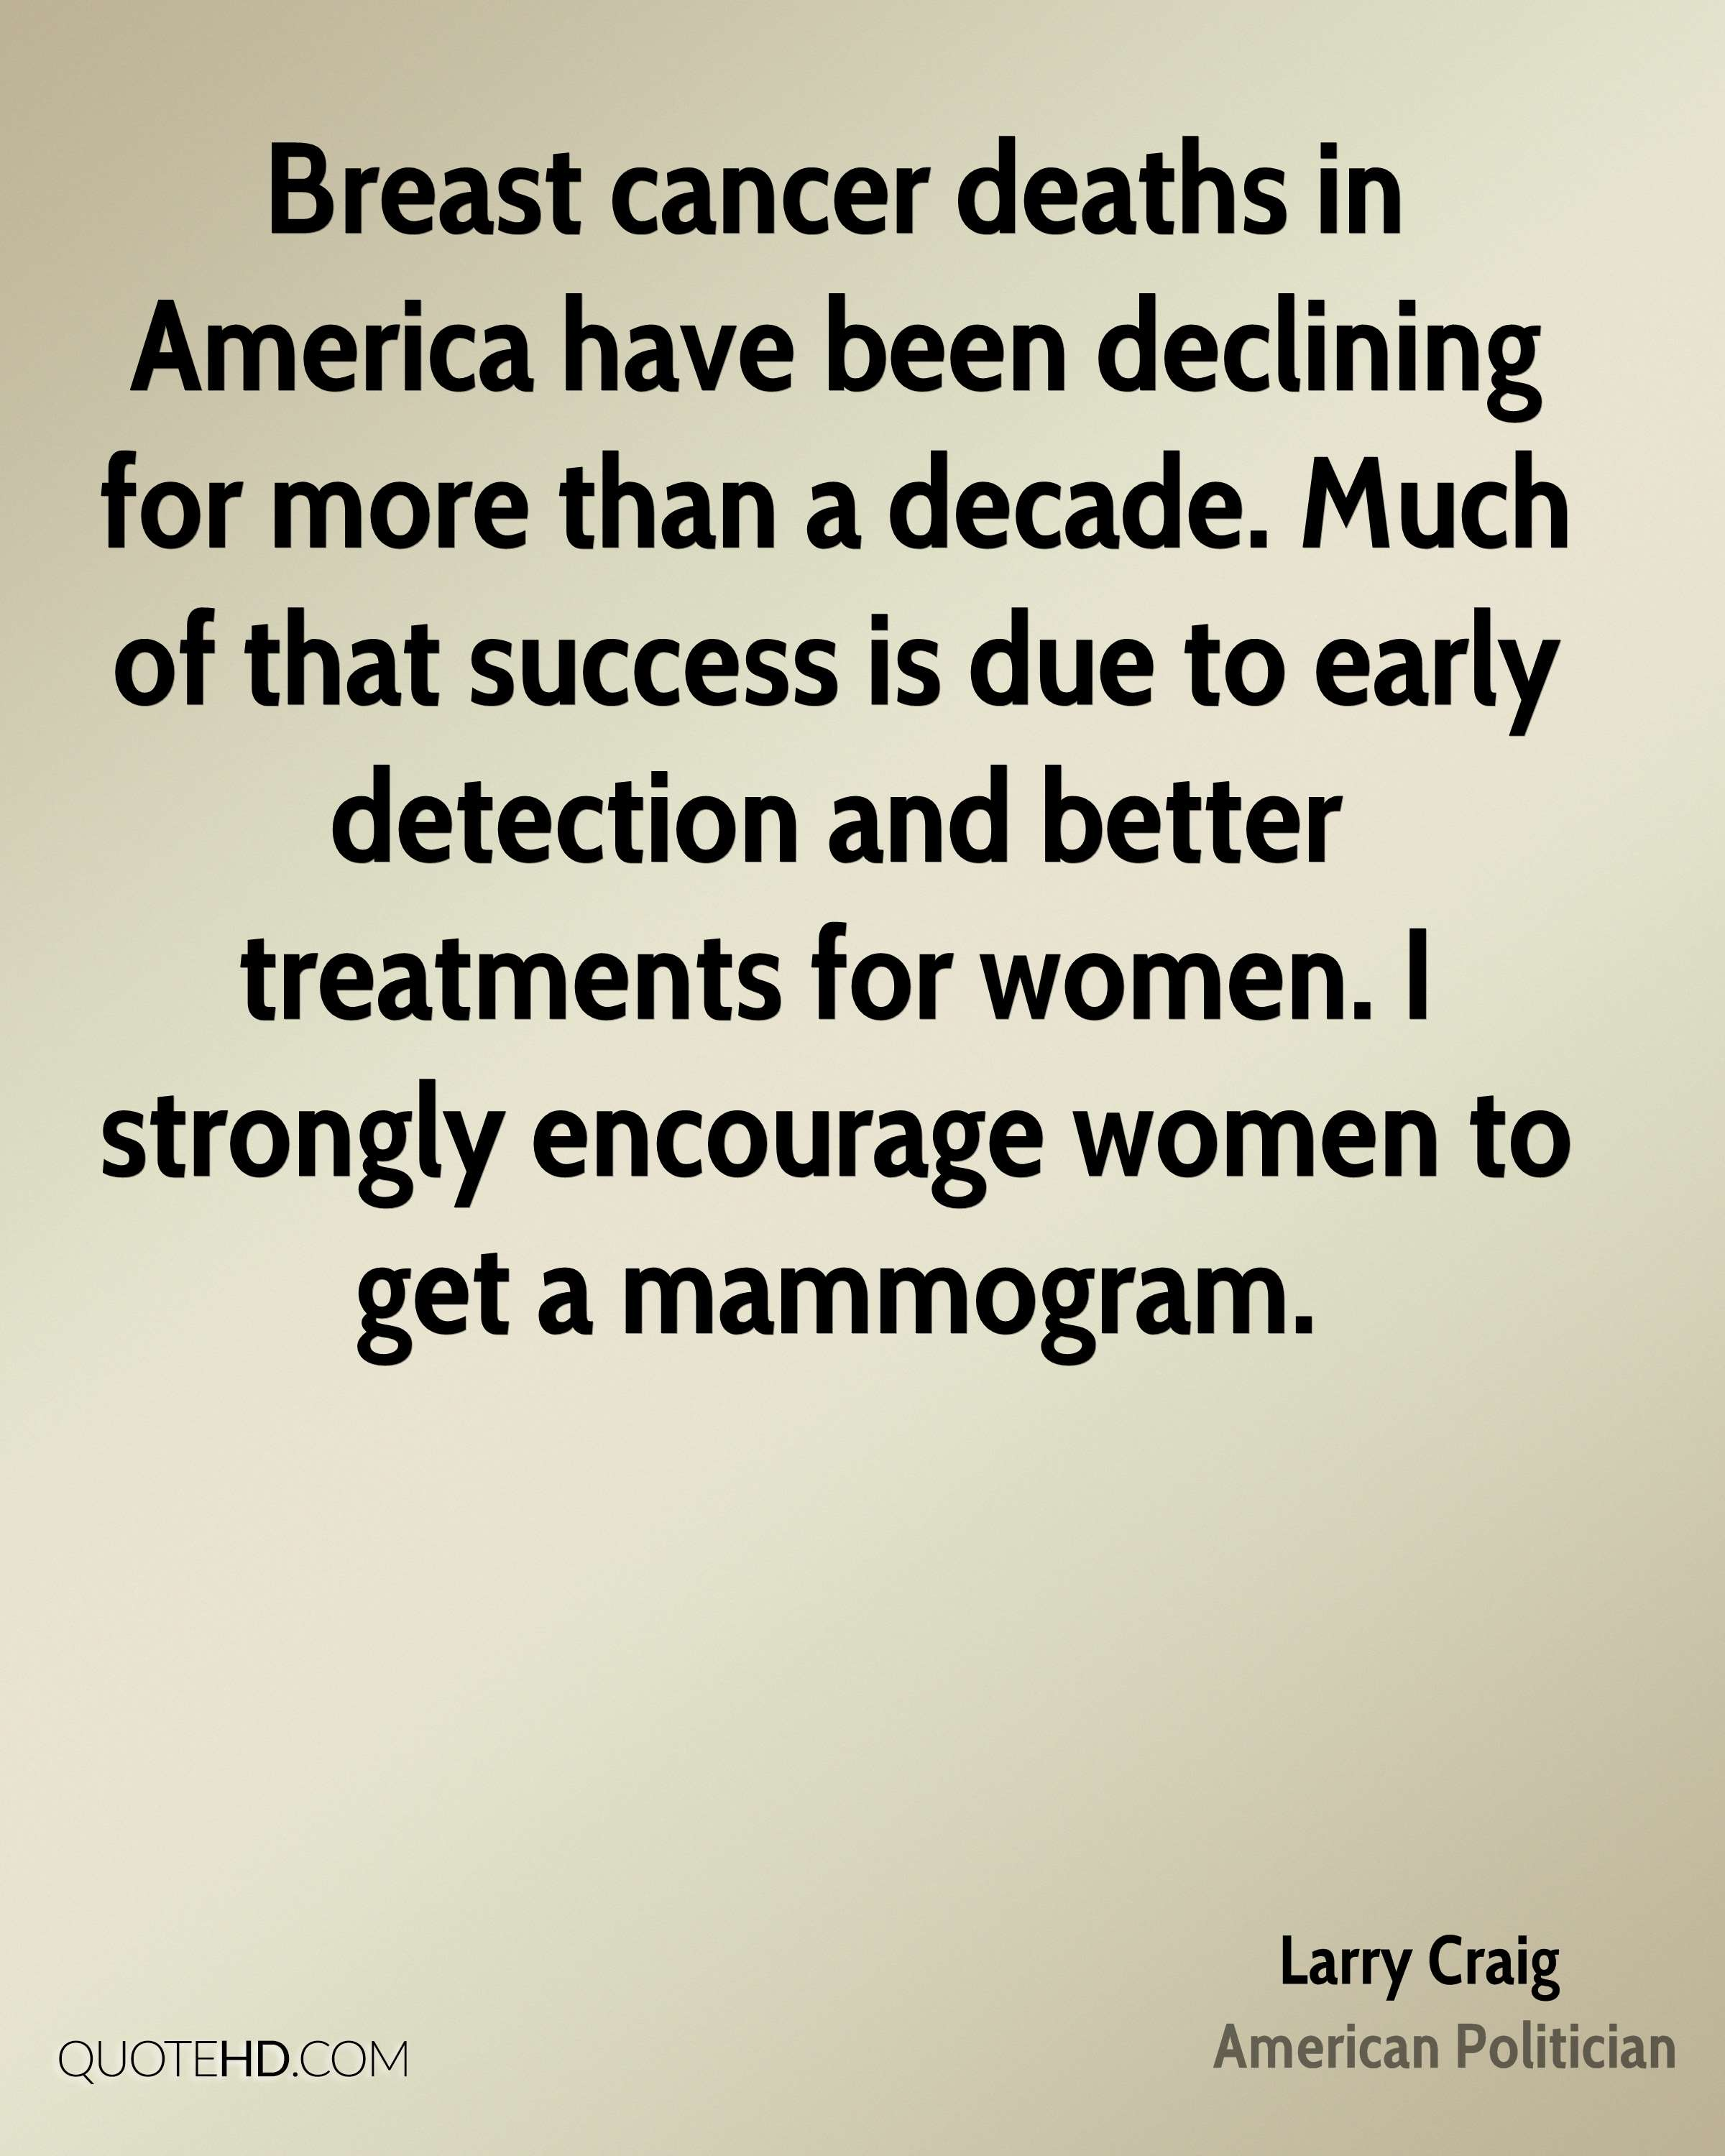 Breast cancer deaths in America have been declining for more than a decade. Much of that success is due to early detection and better treatments for women. I strongly encourage women to get a mammogram.